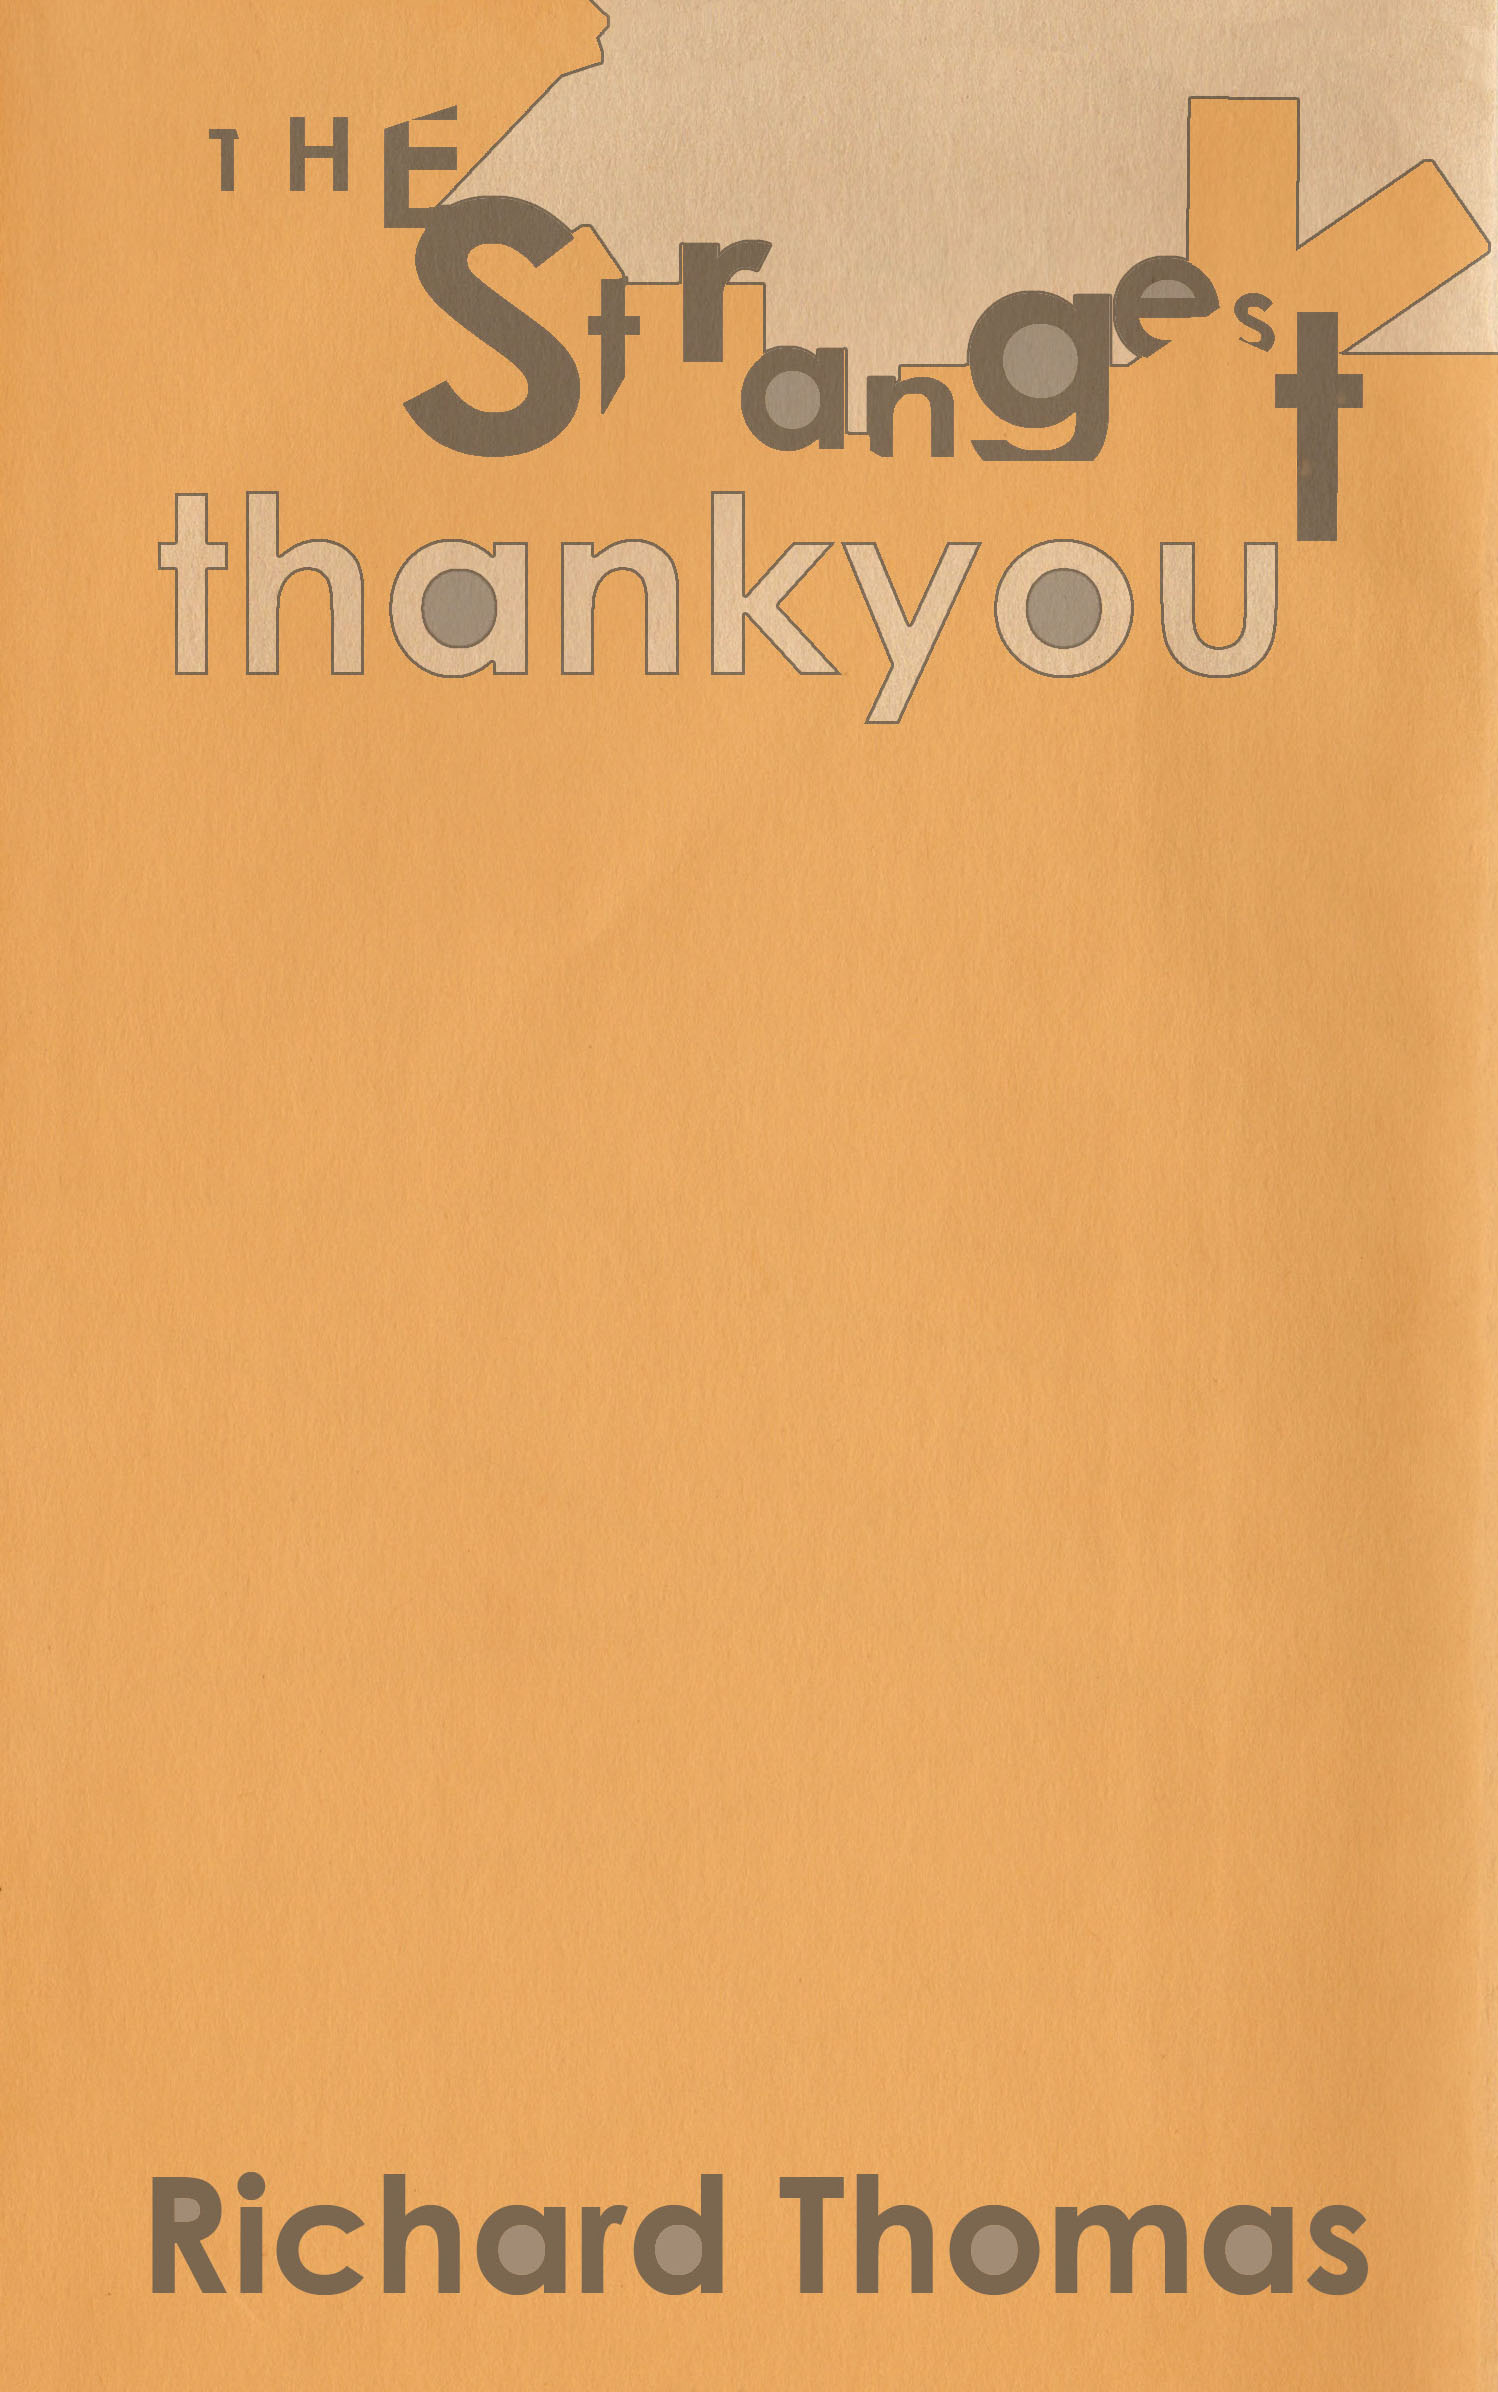 The Strangest Thankyou by Richard Thomas